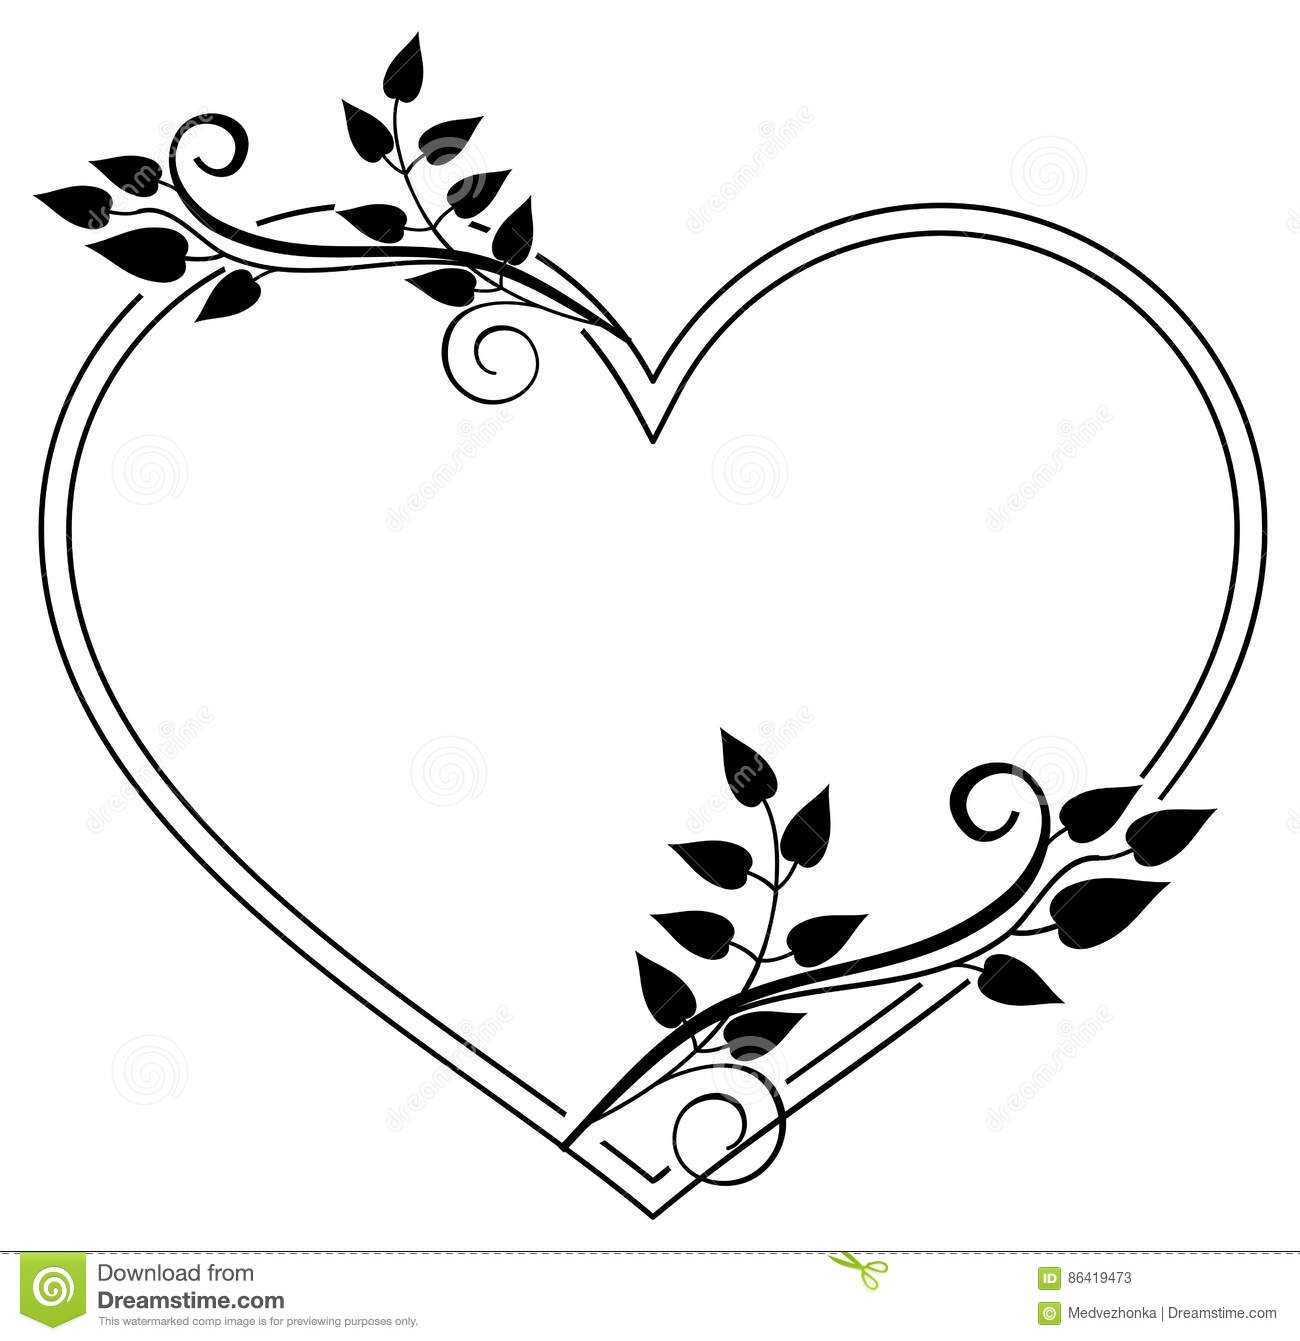 Heart Shaped Black And White Frame With Floral Silhouettes Raster